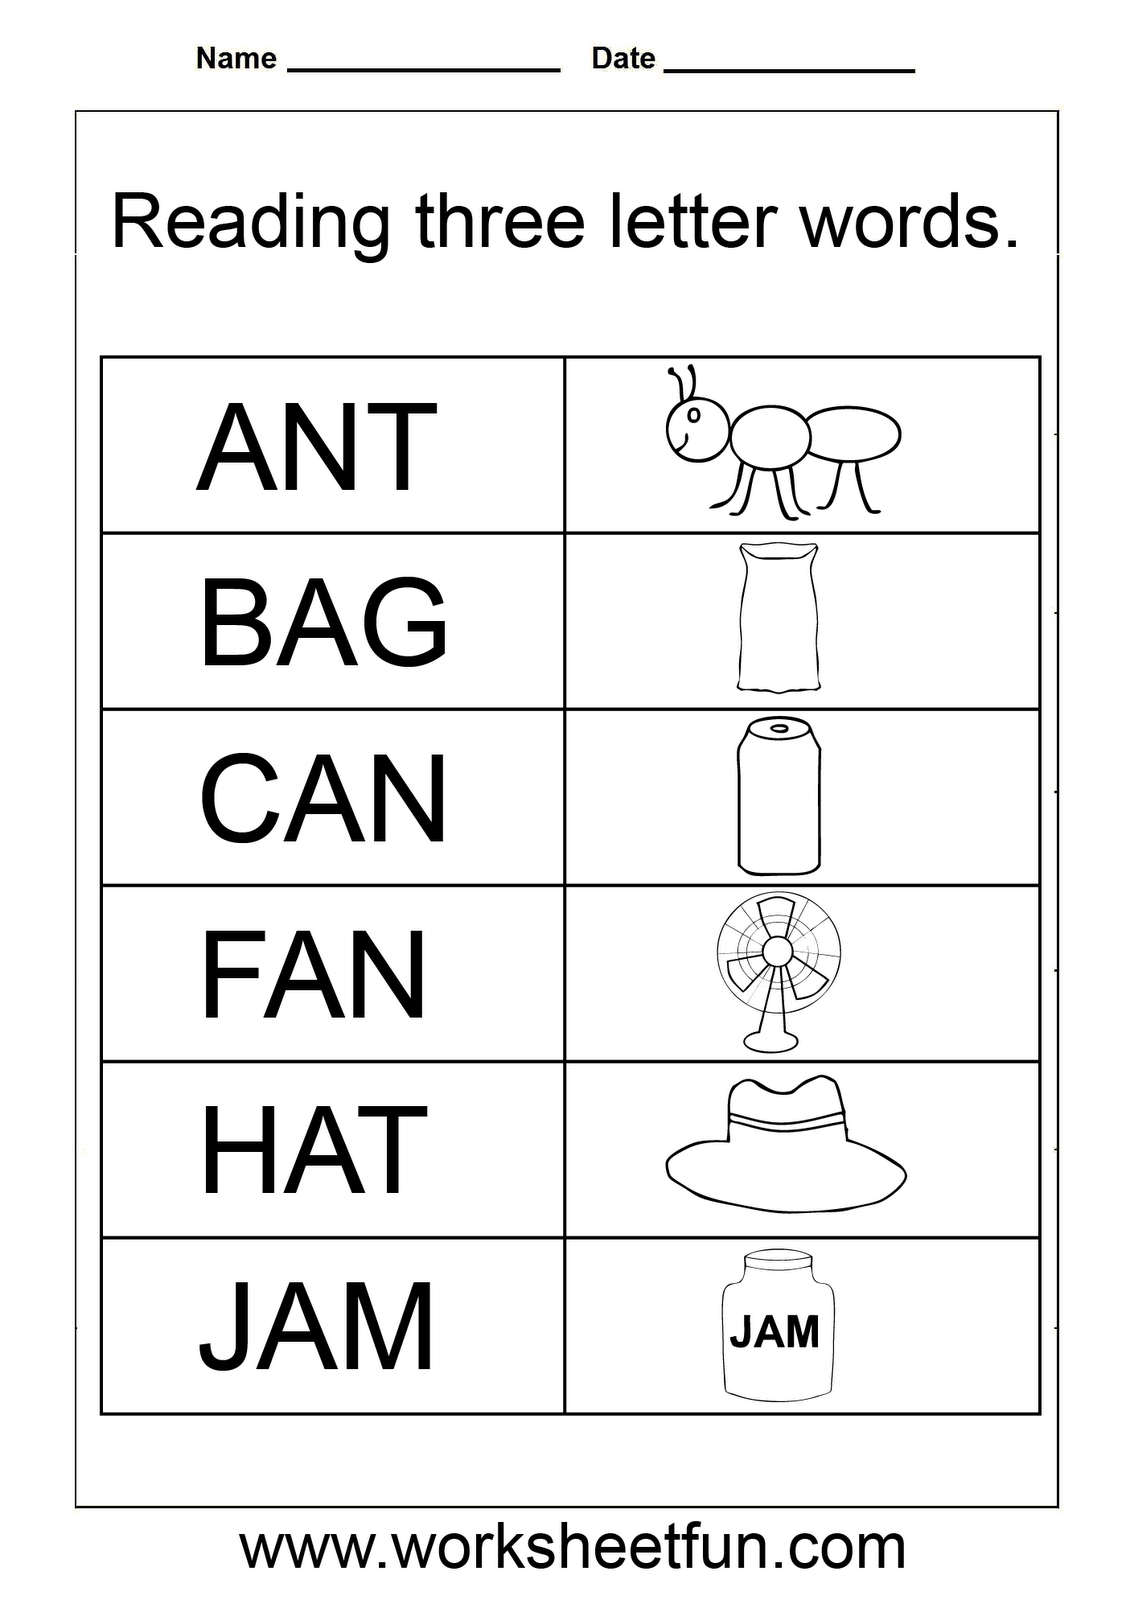 common worksheets 187 three letter words for preschool image result for nursery spelling worksheets ansh 978